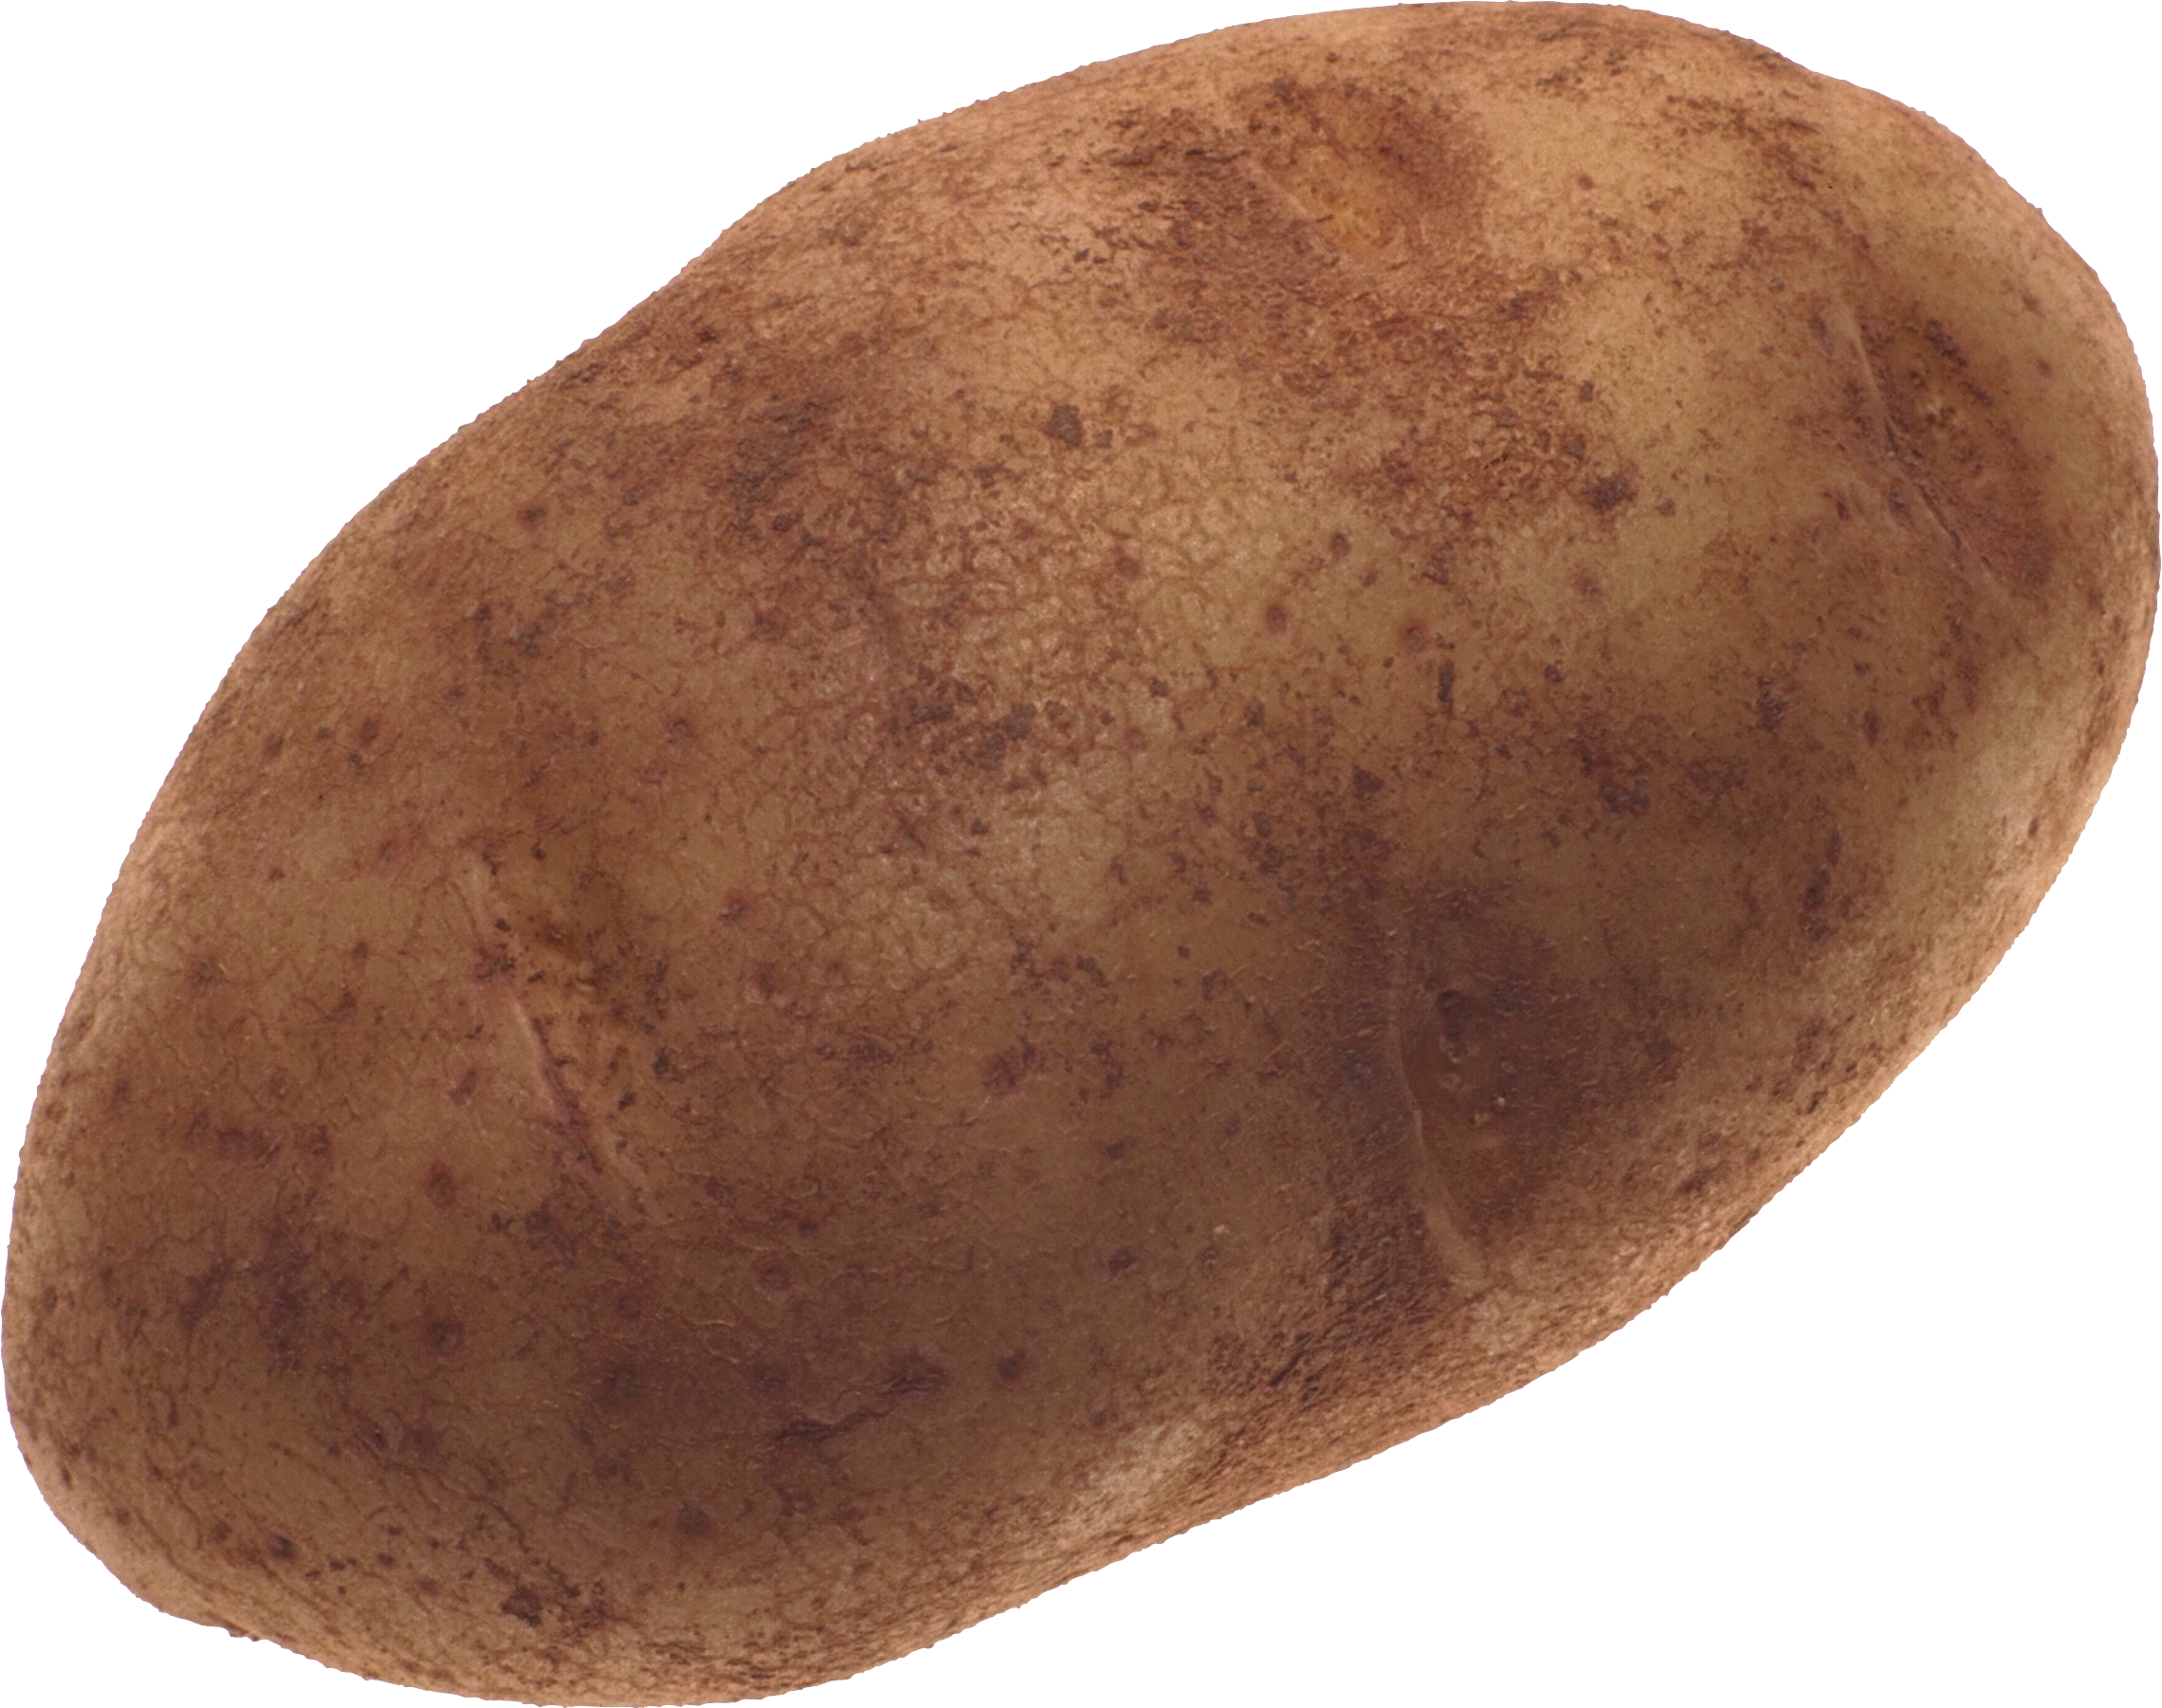 High quality png web. Potato clipart potato food